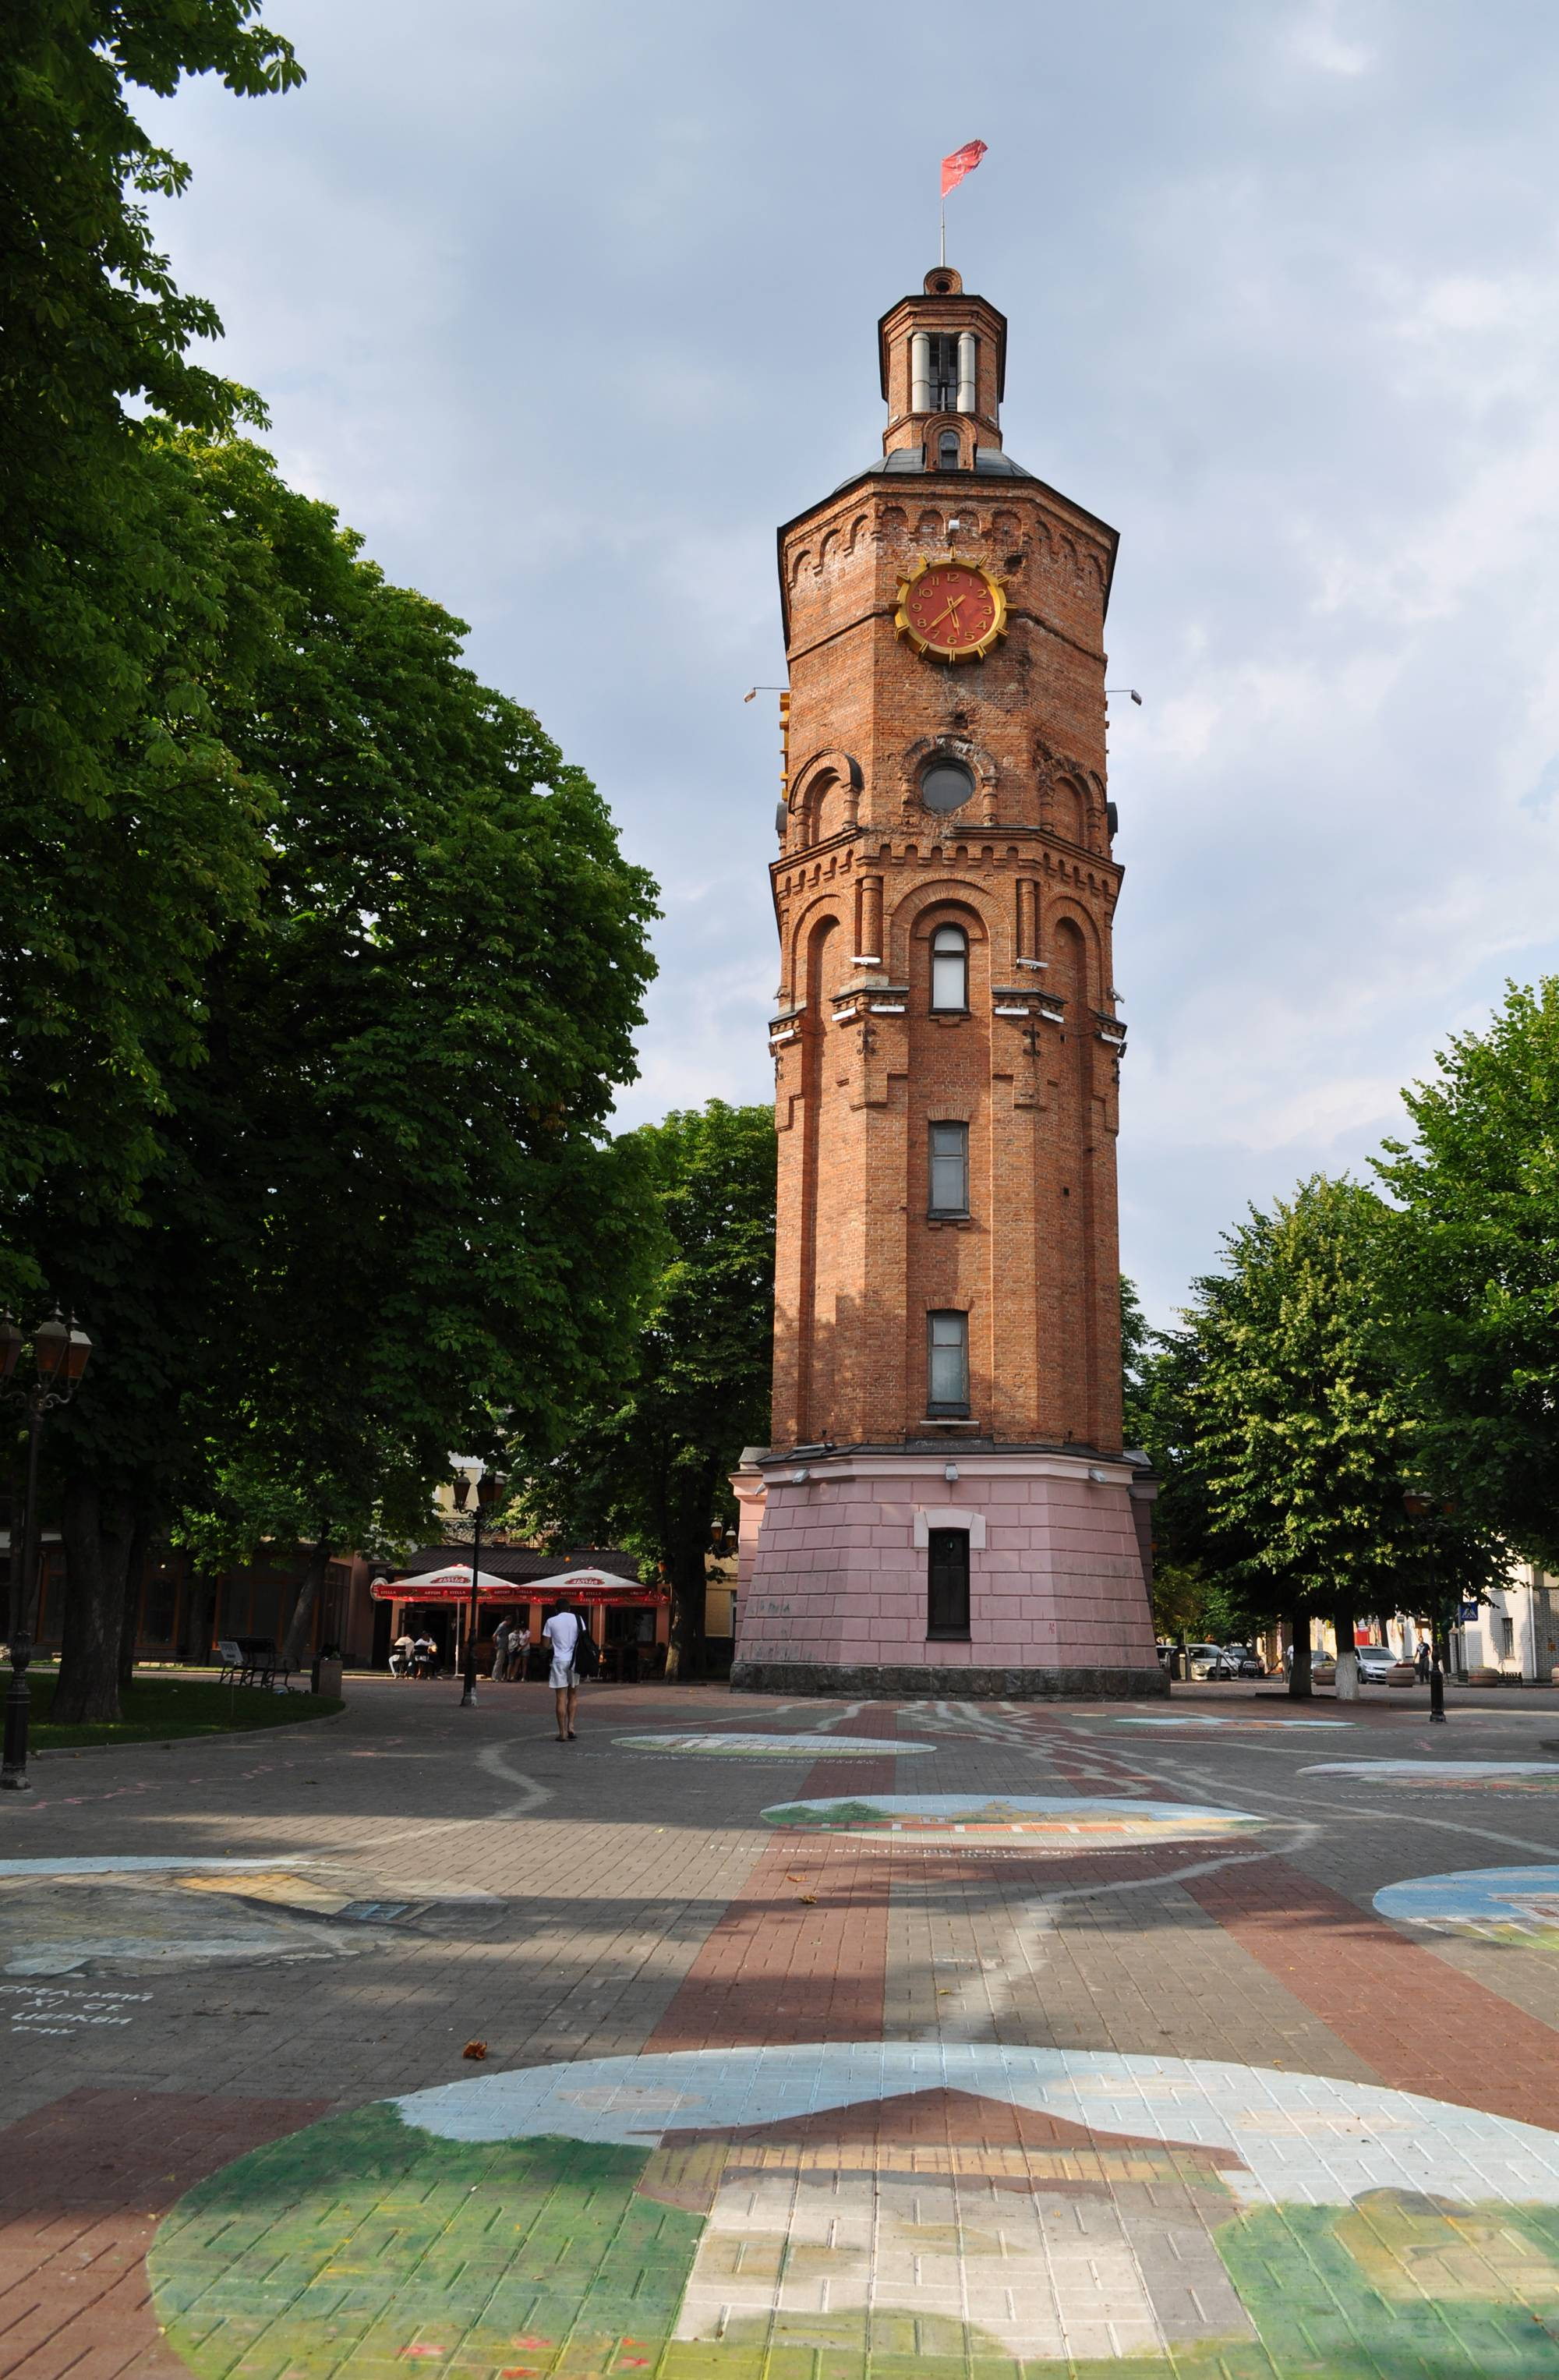 Built in 1911 and designed by city architect Grygoriy Artynov, the Vinnytsia Fire Tower is a symbol of the city. Mike Dixon of St. Charles spent nearly three years in the city as a Peace Corps volunteer.